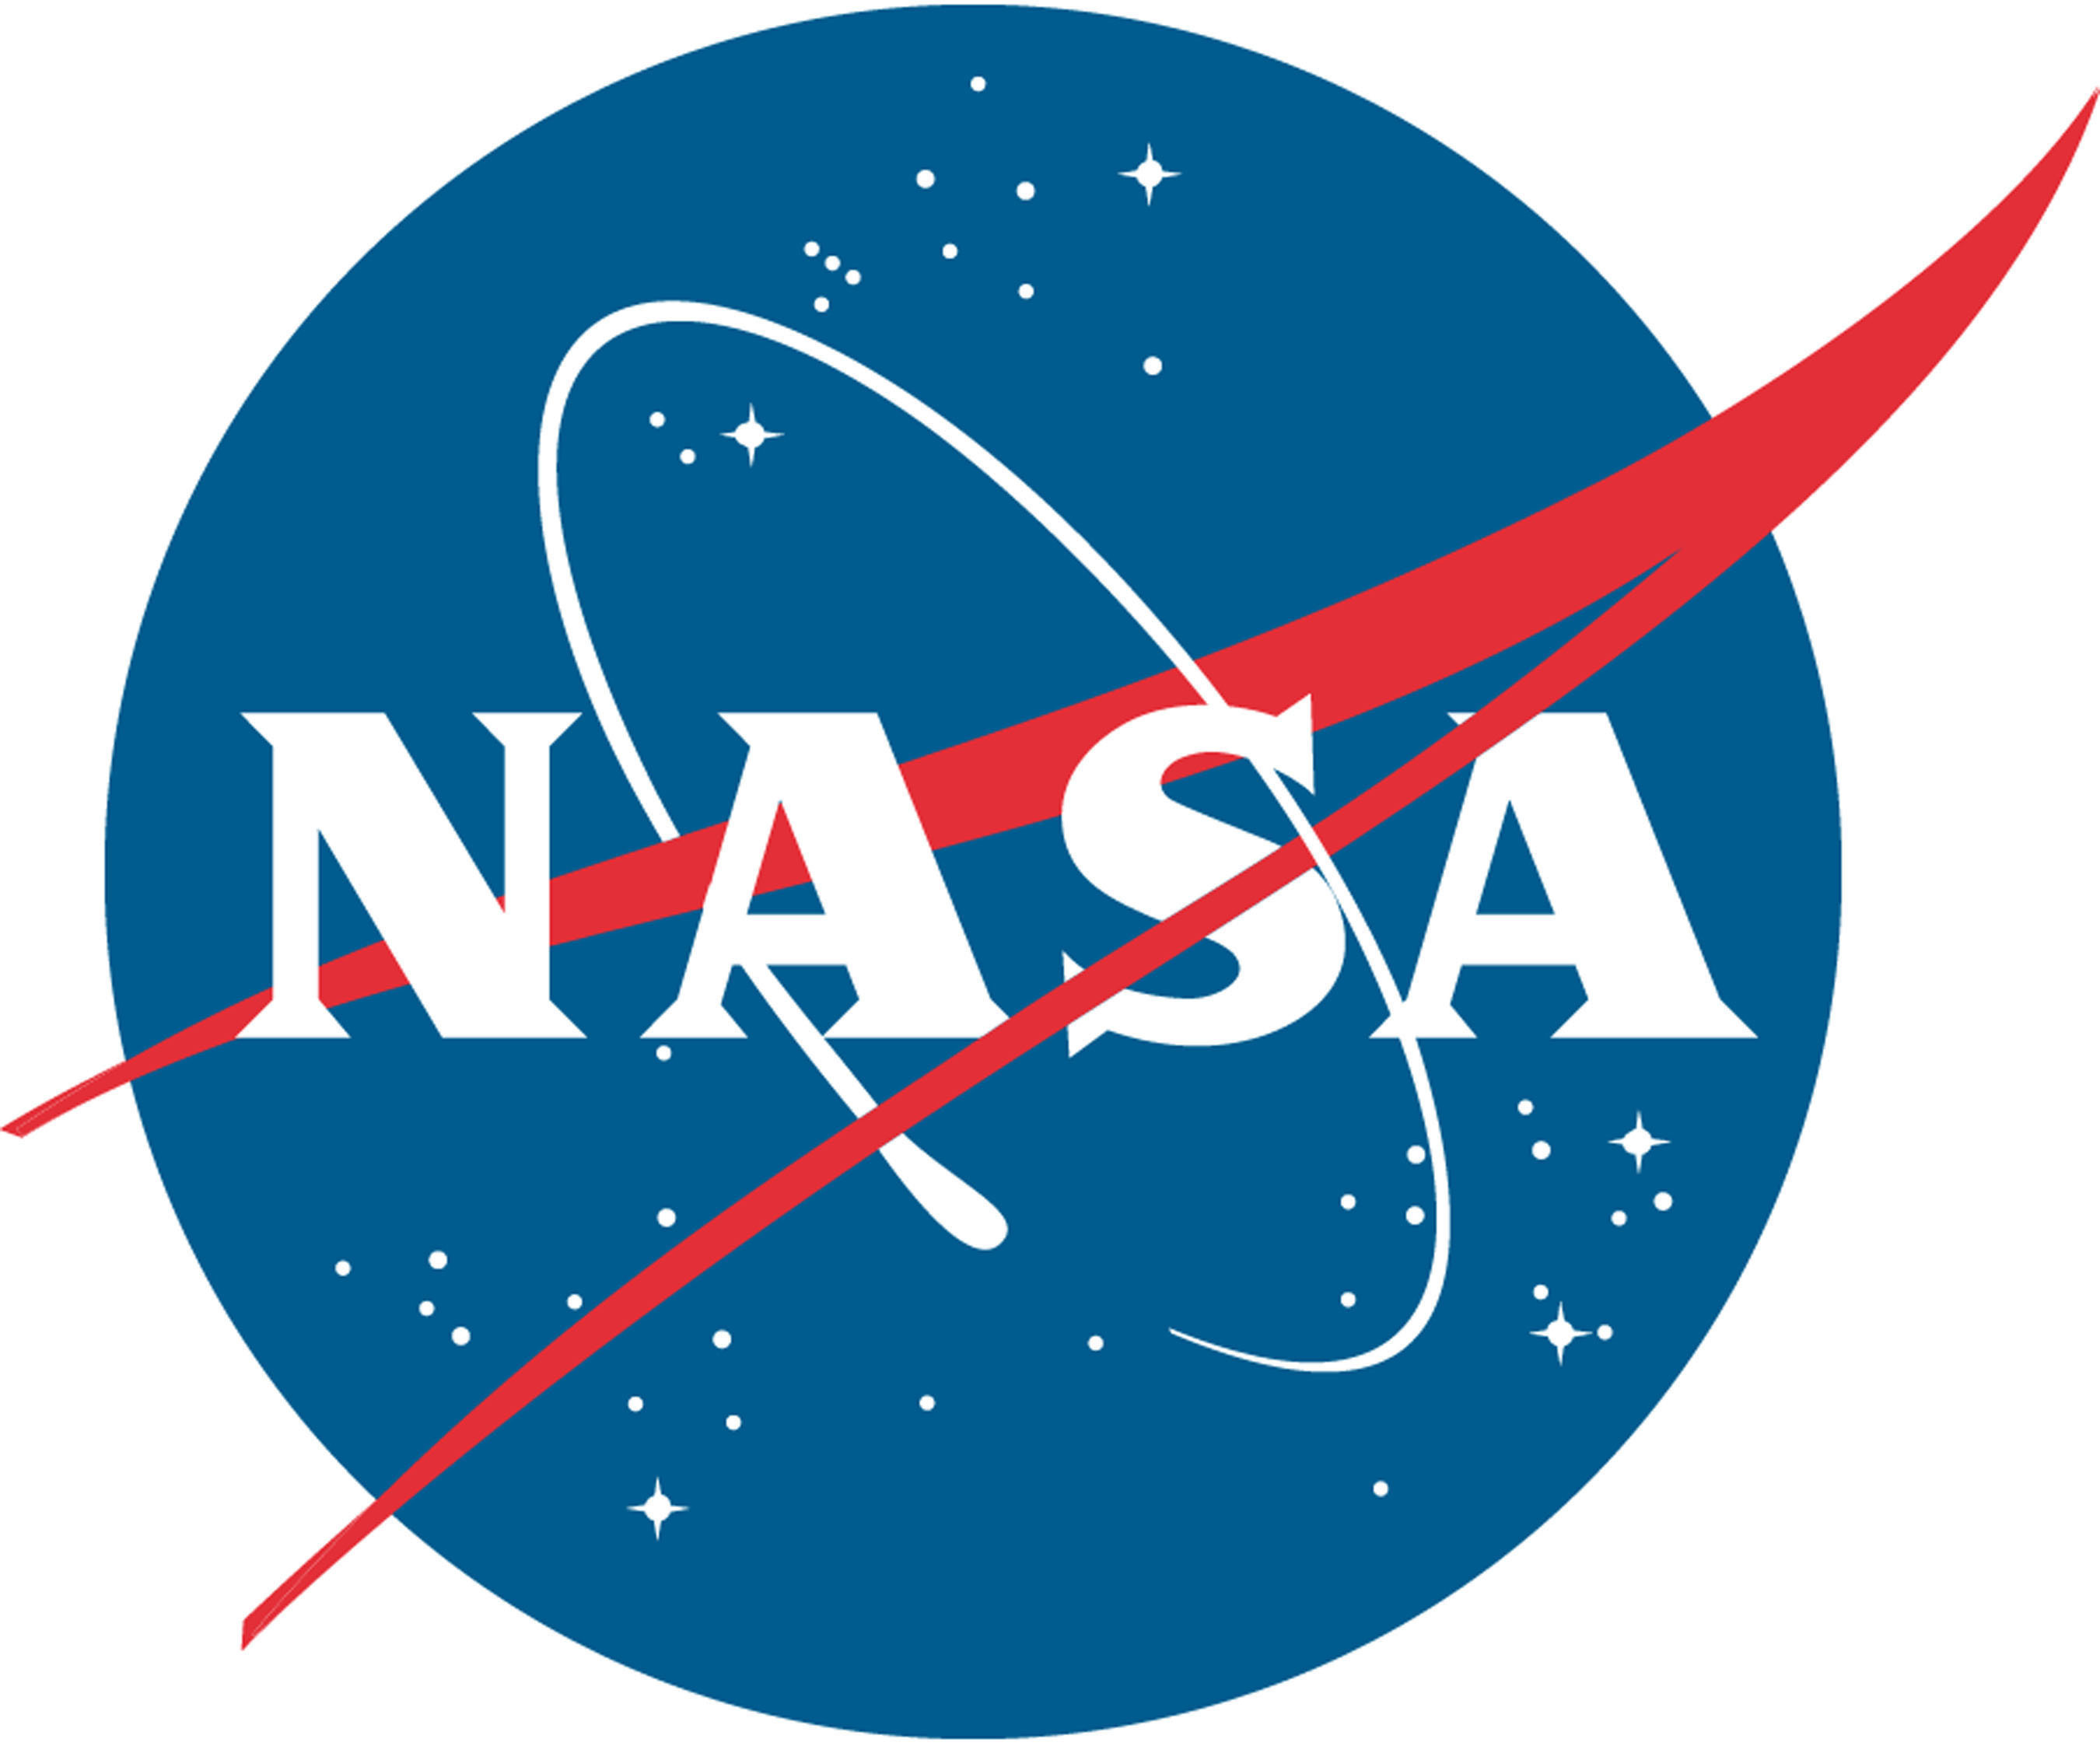 NASA Announces Early Stage Innovation Space Technology Research Grants